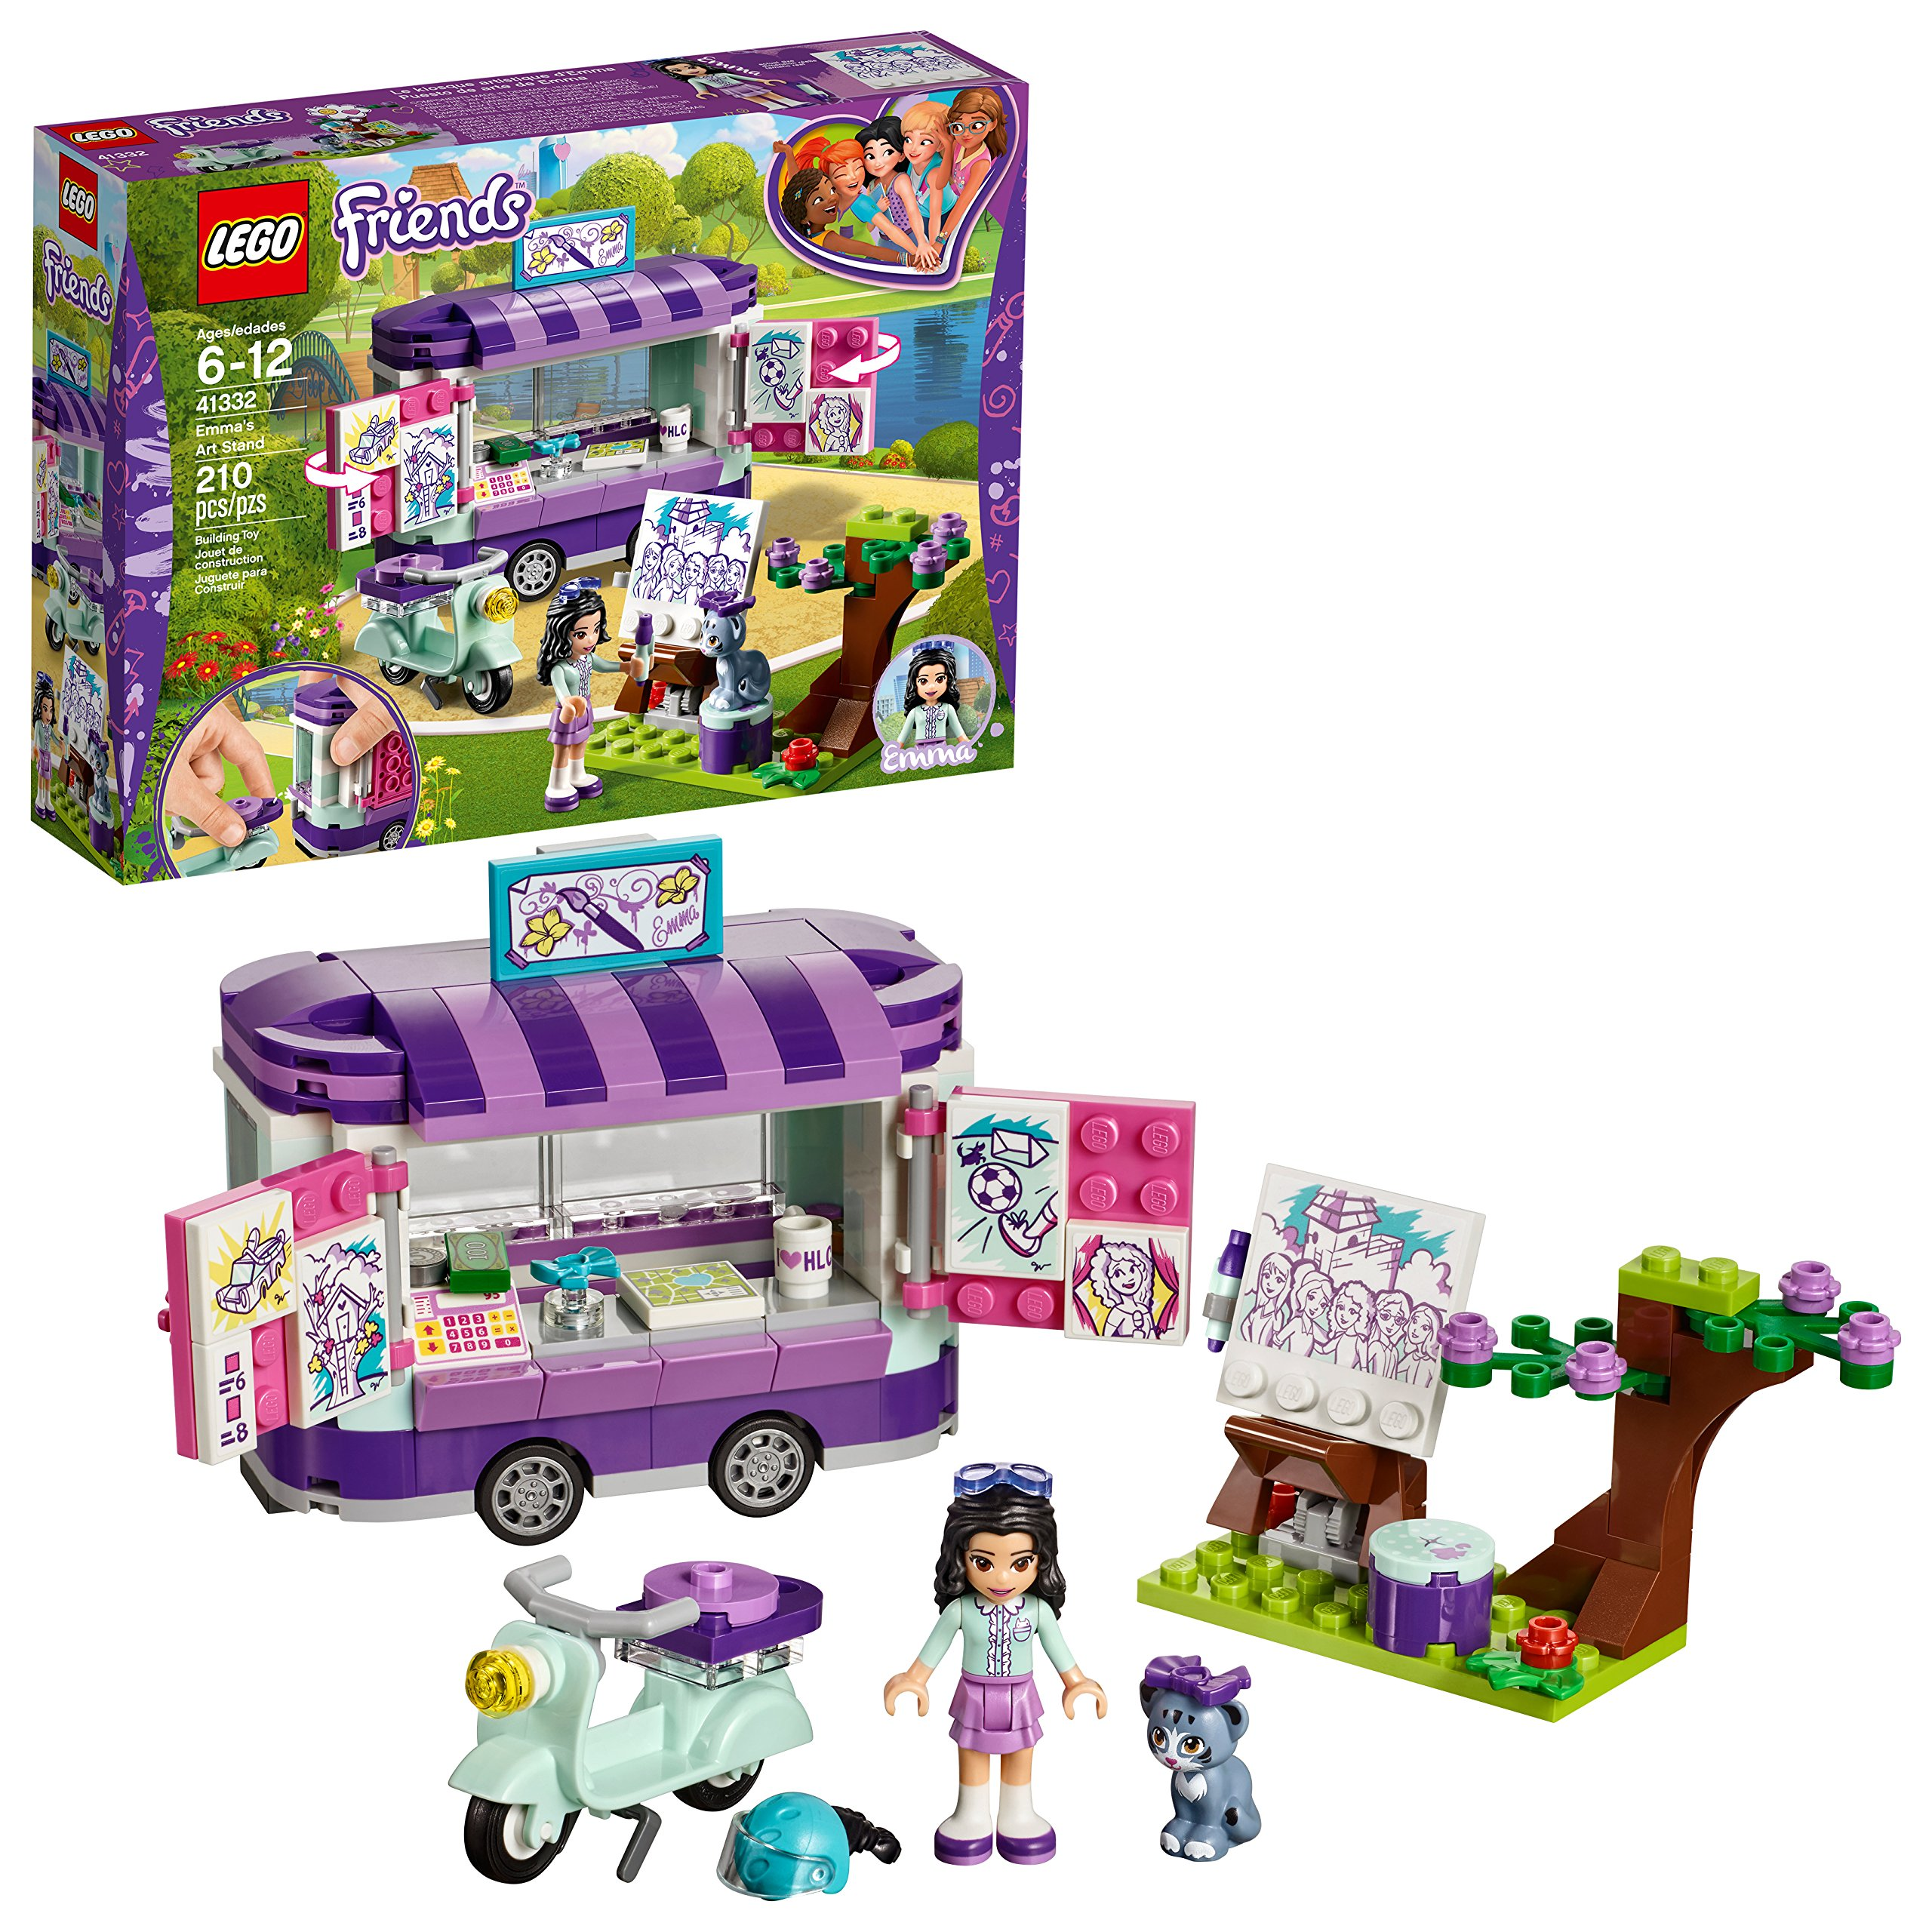 LEGO Friends Emma's Art Stand 41332 Building Set (210 Pieces) by LEGO